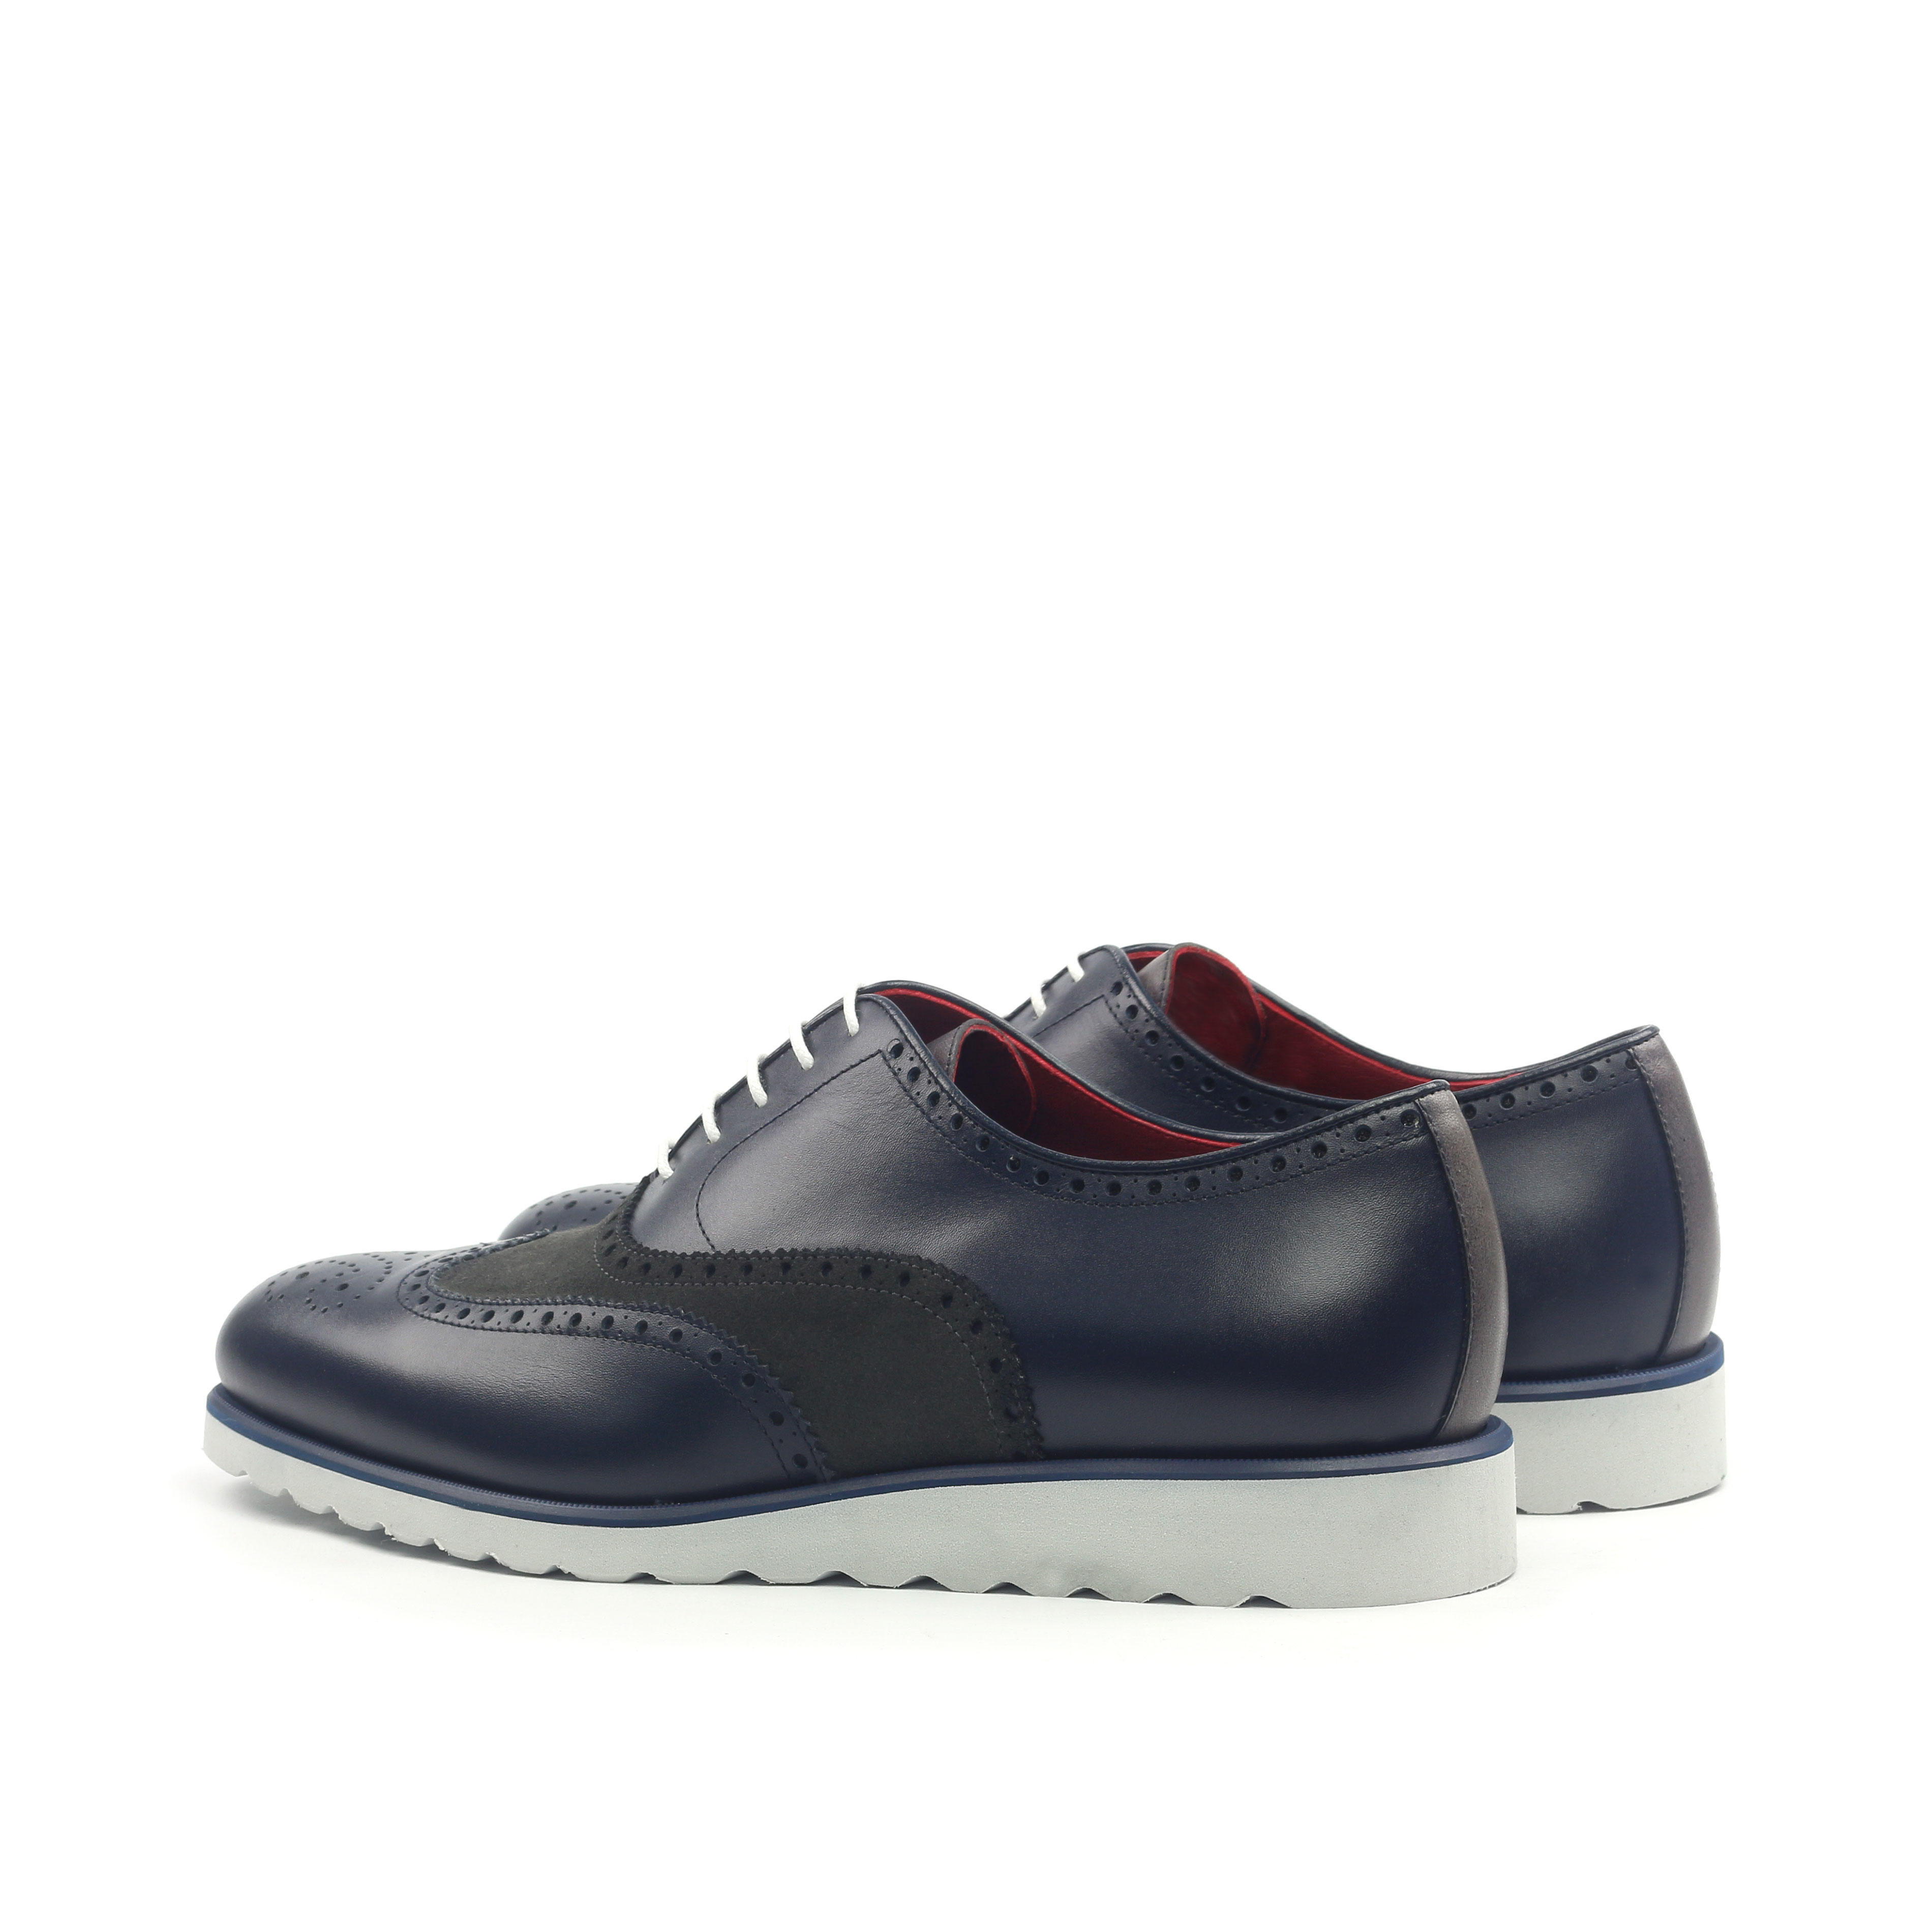 MANOR OF LONDON 'The Marylebone' Navy Calfskin & Grey Suede Sportwedge Brogue Luxury Custom Initials Monogrammed Back Side View